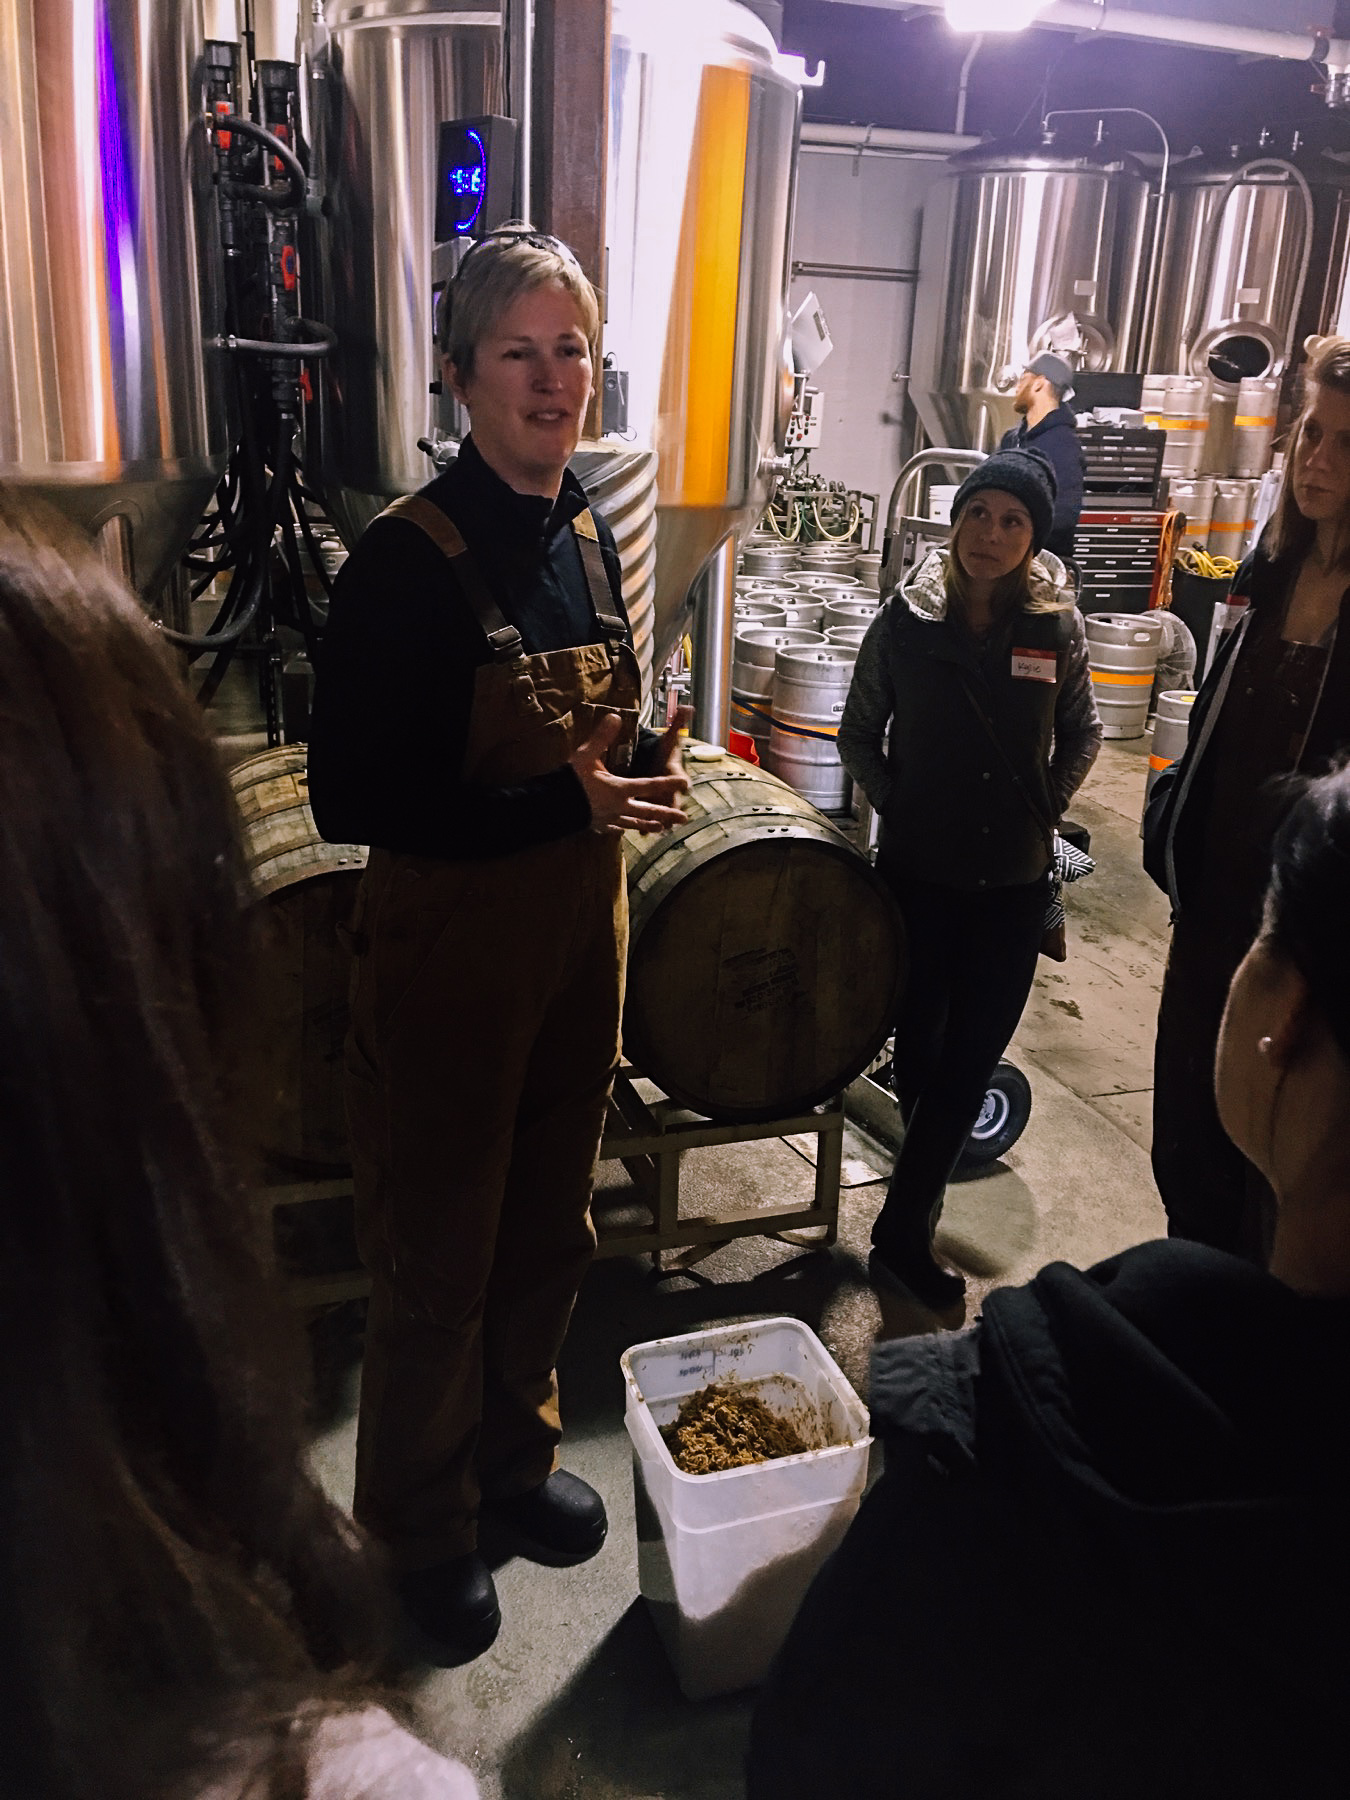 Robyn Schumacher, brewer at Stoup, explaining the brewing process